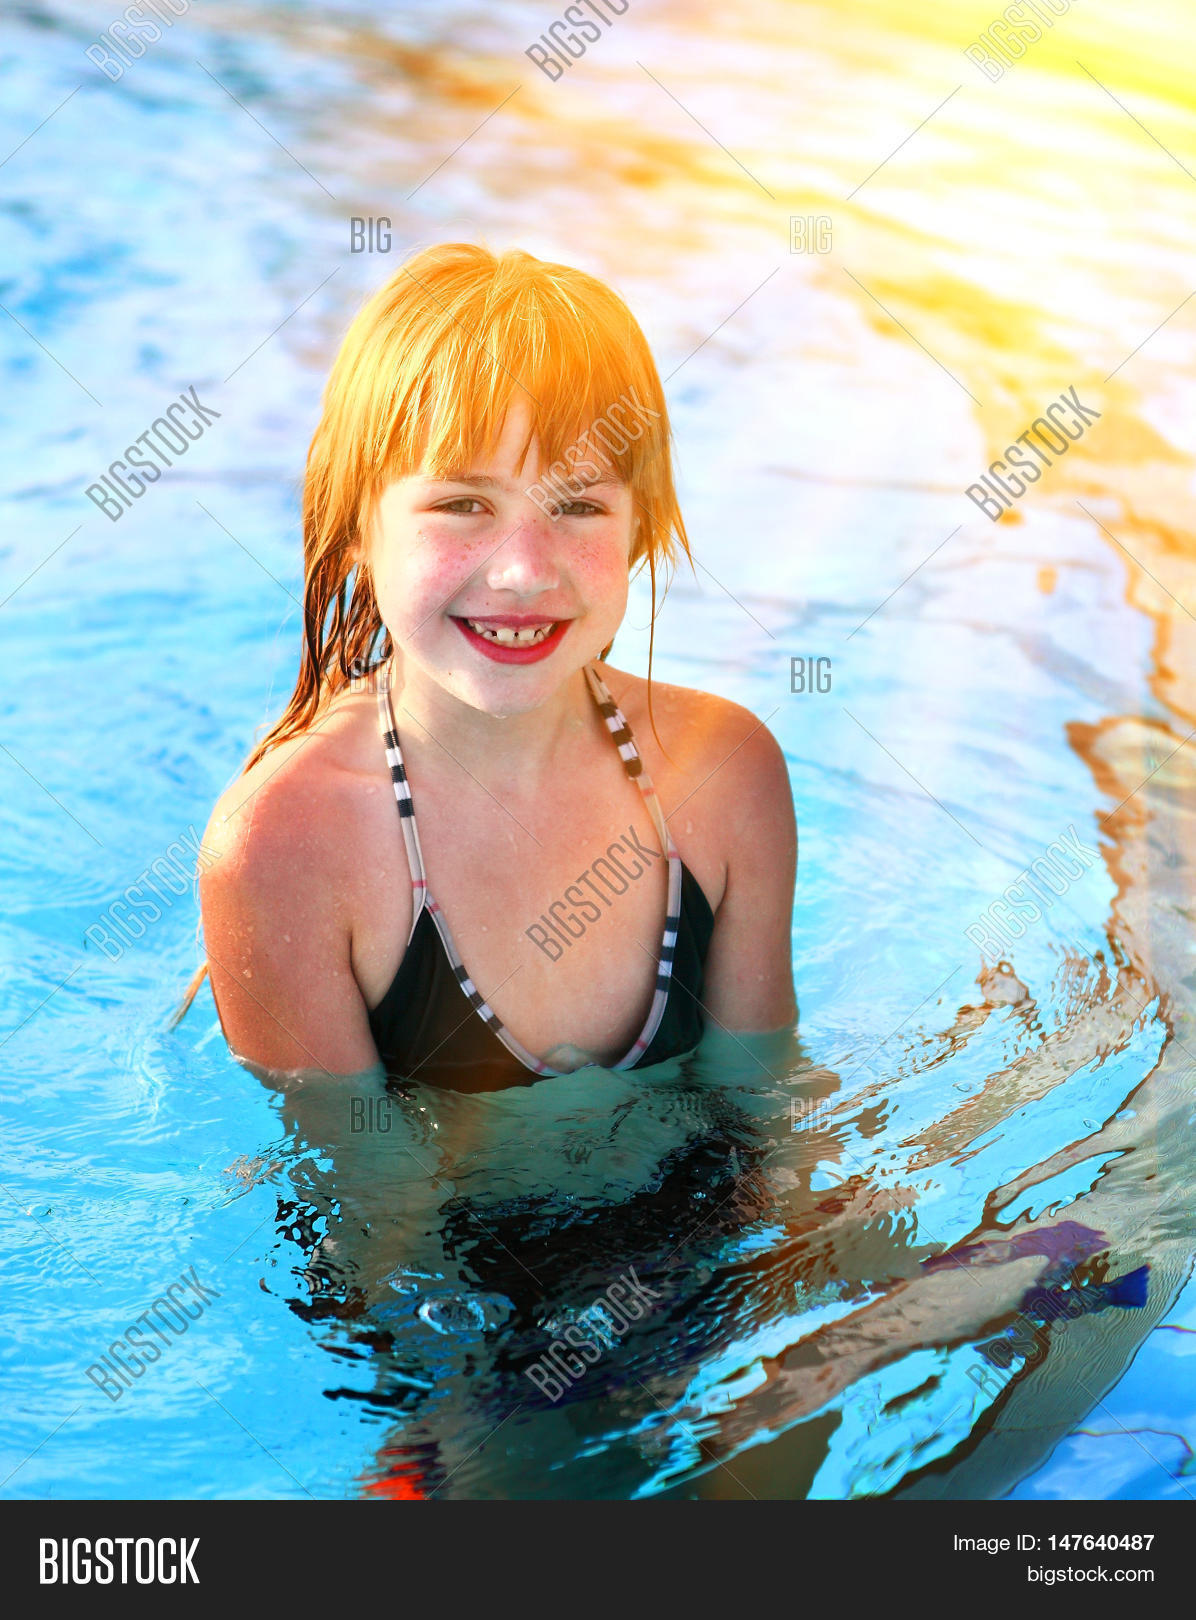 preteen naked girl Preteen 14 years pic Stock Photos - Page 1 : Masterfile